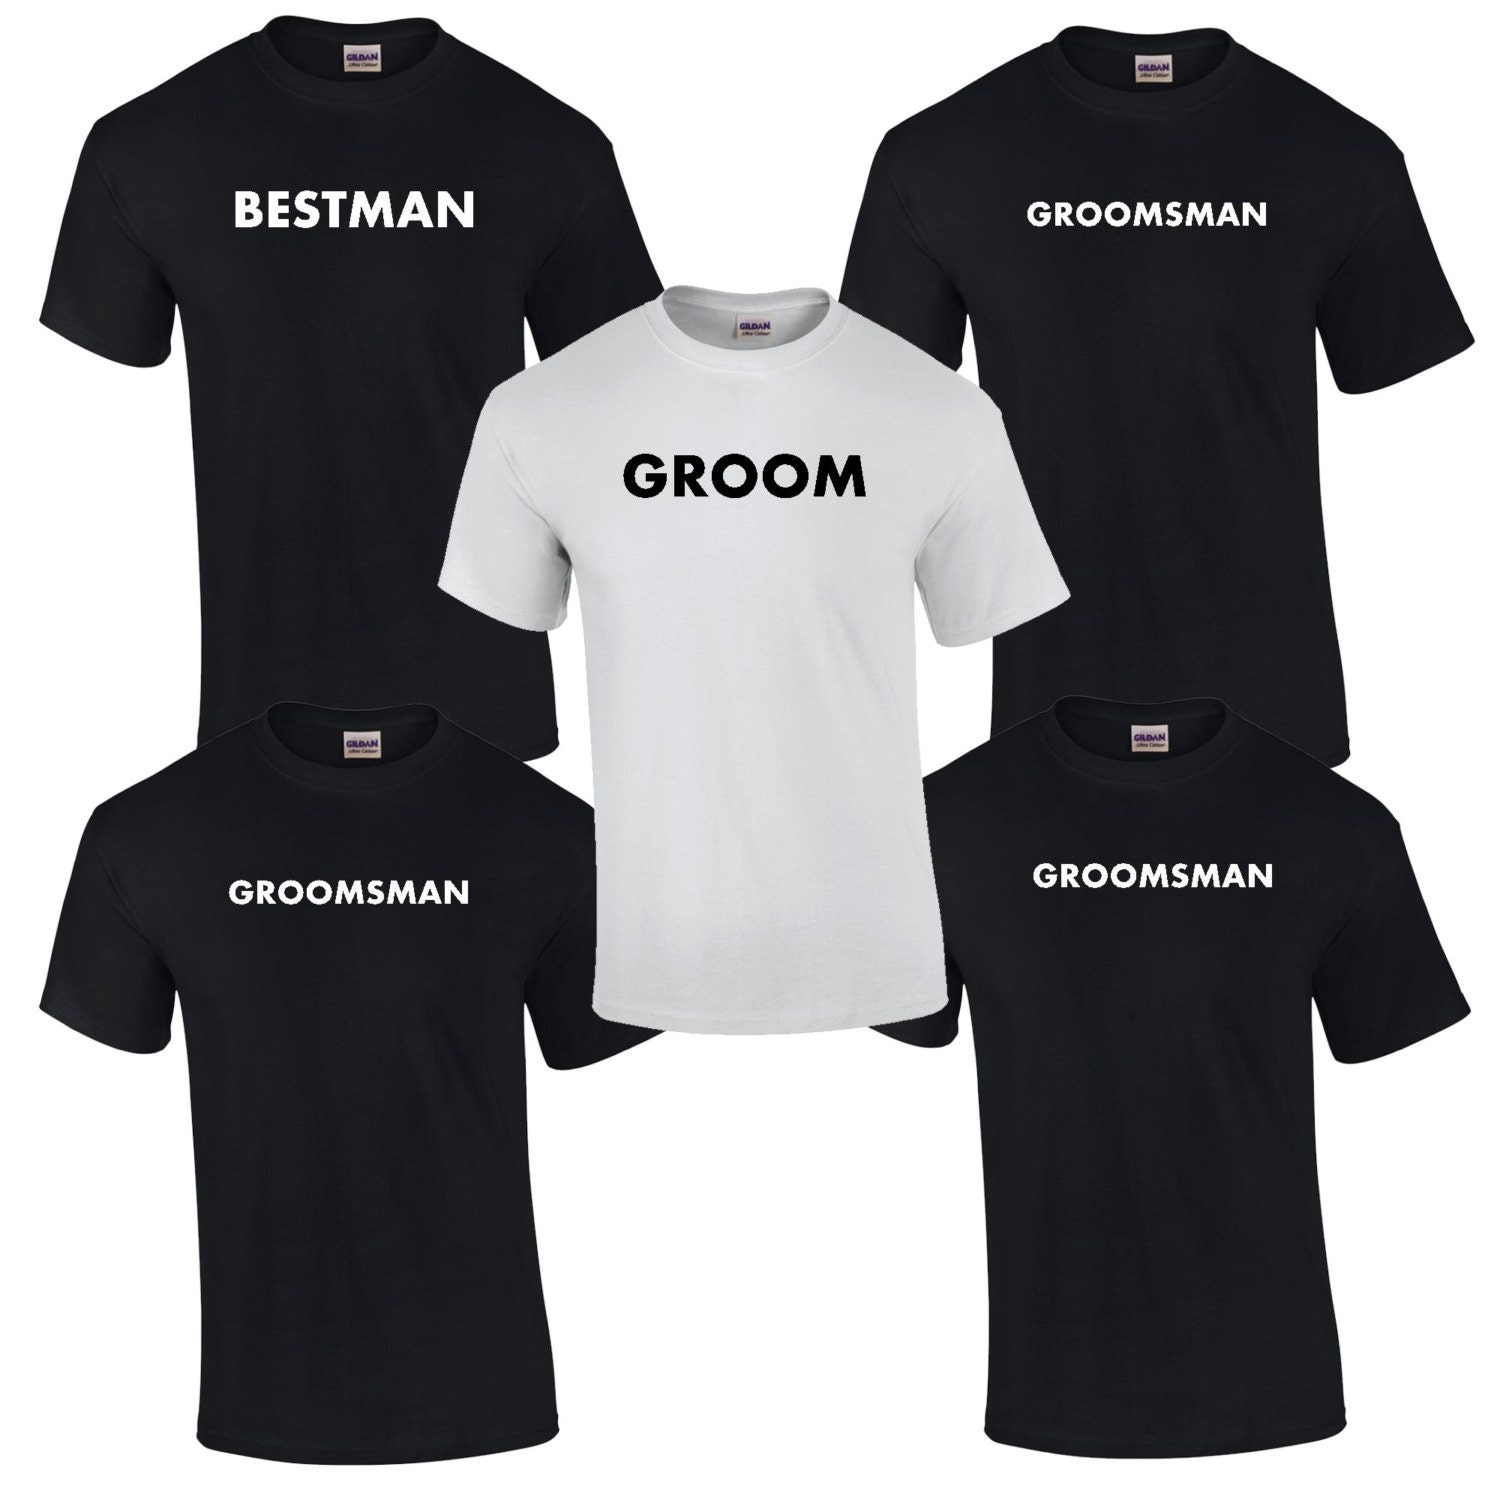 3 Bachelor Party T-Shirts. Bachelor Party Tees. Groomsmen